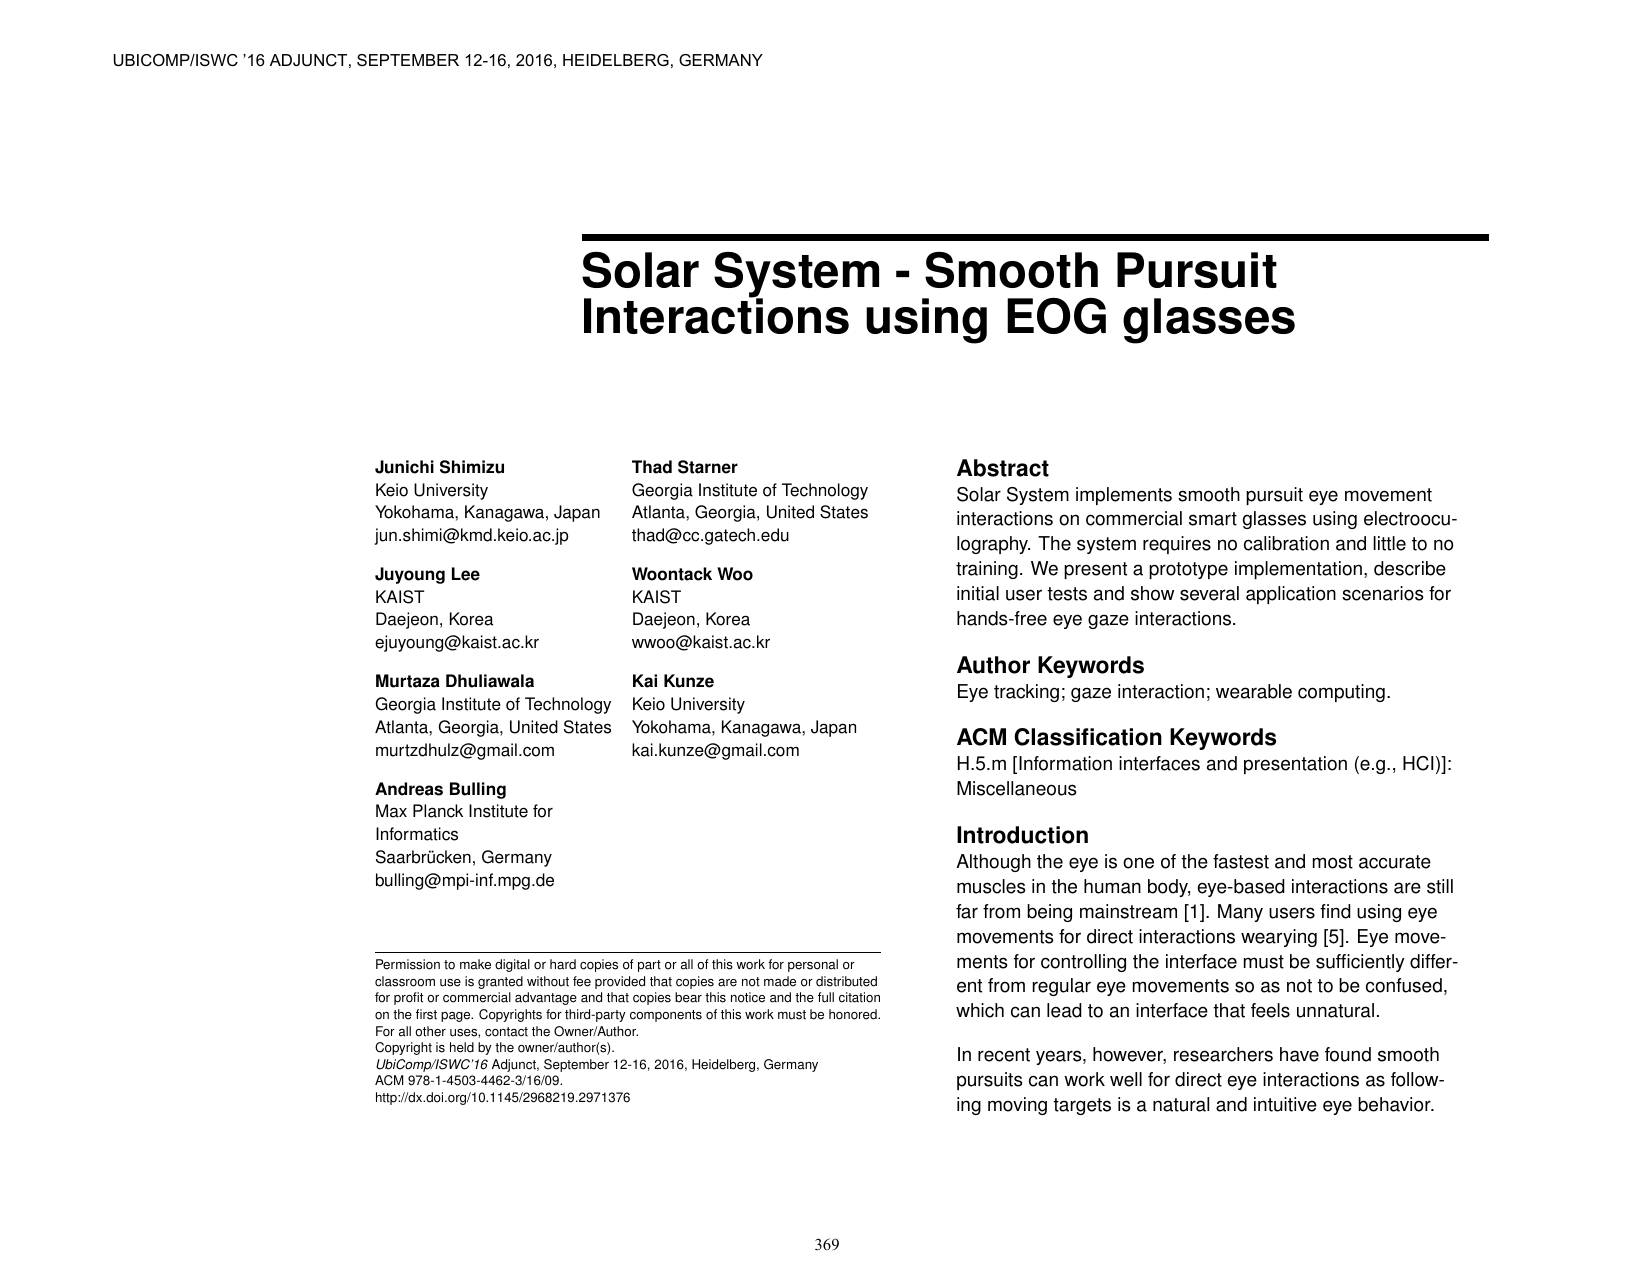 Solar System: Smooth Pursuit Interactions Using EOG Glasses